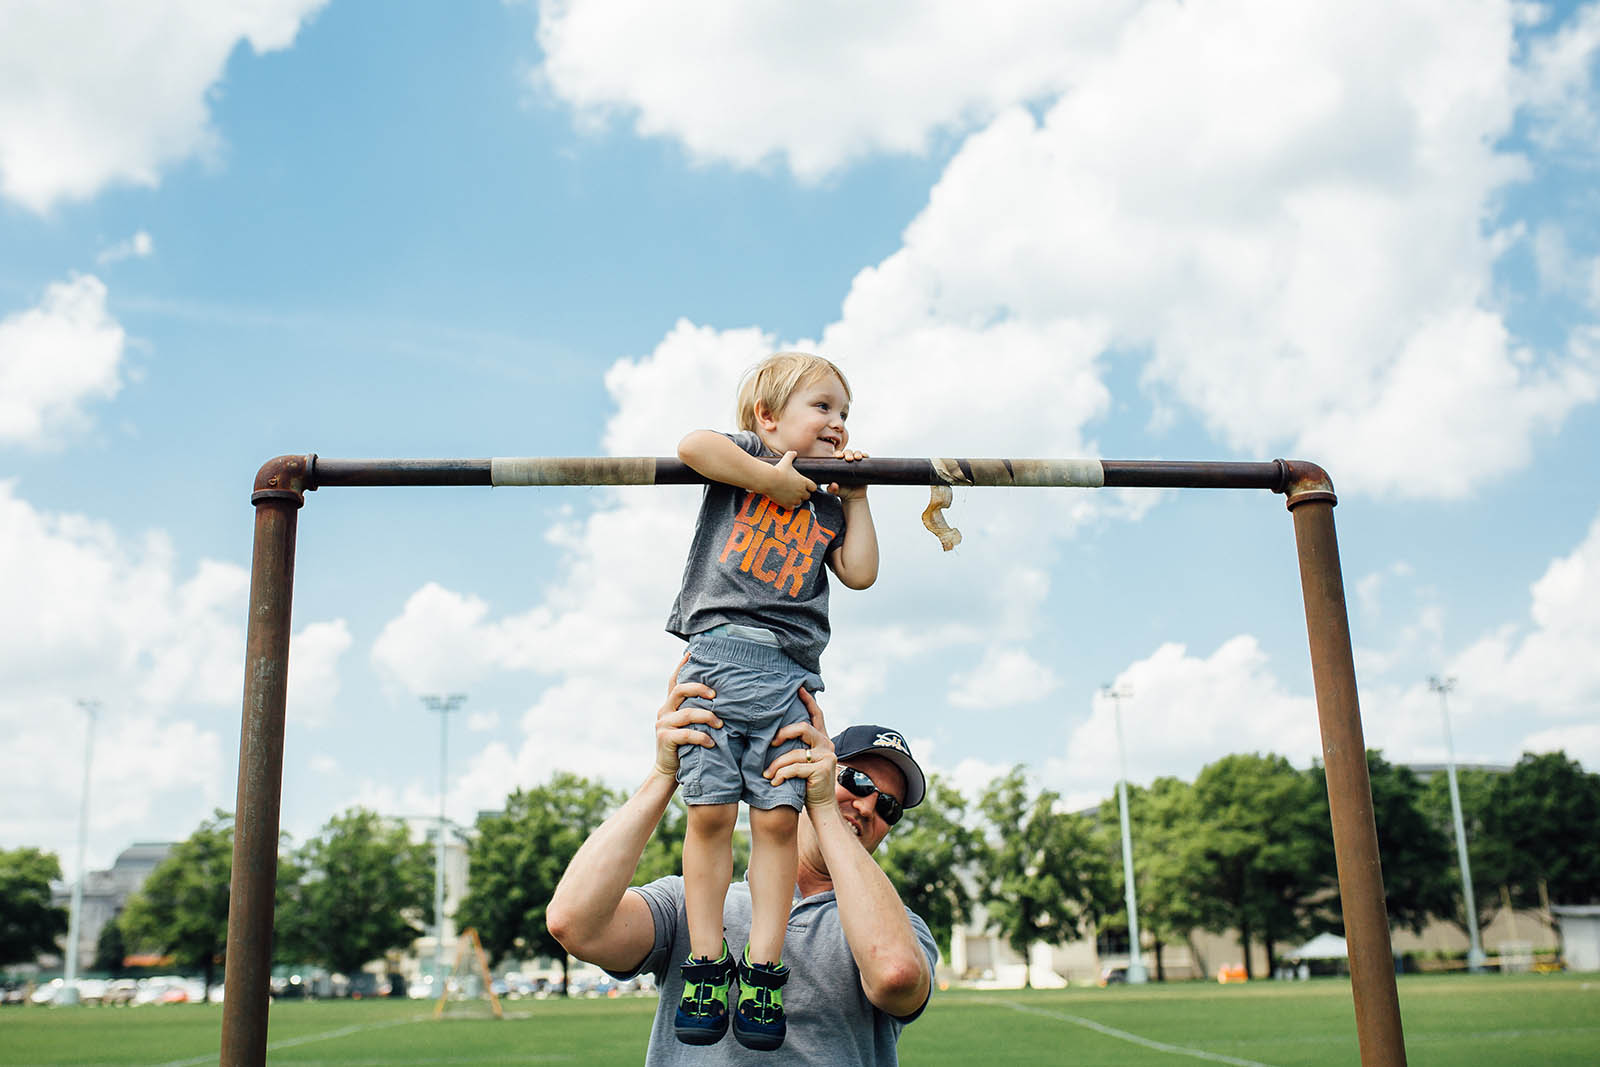 picture of kid hanging on poles on a football field by Michelle Stoddard